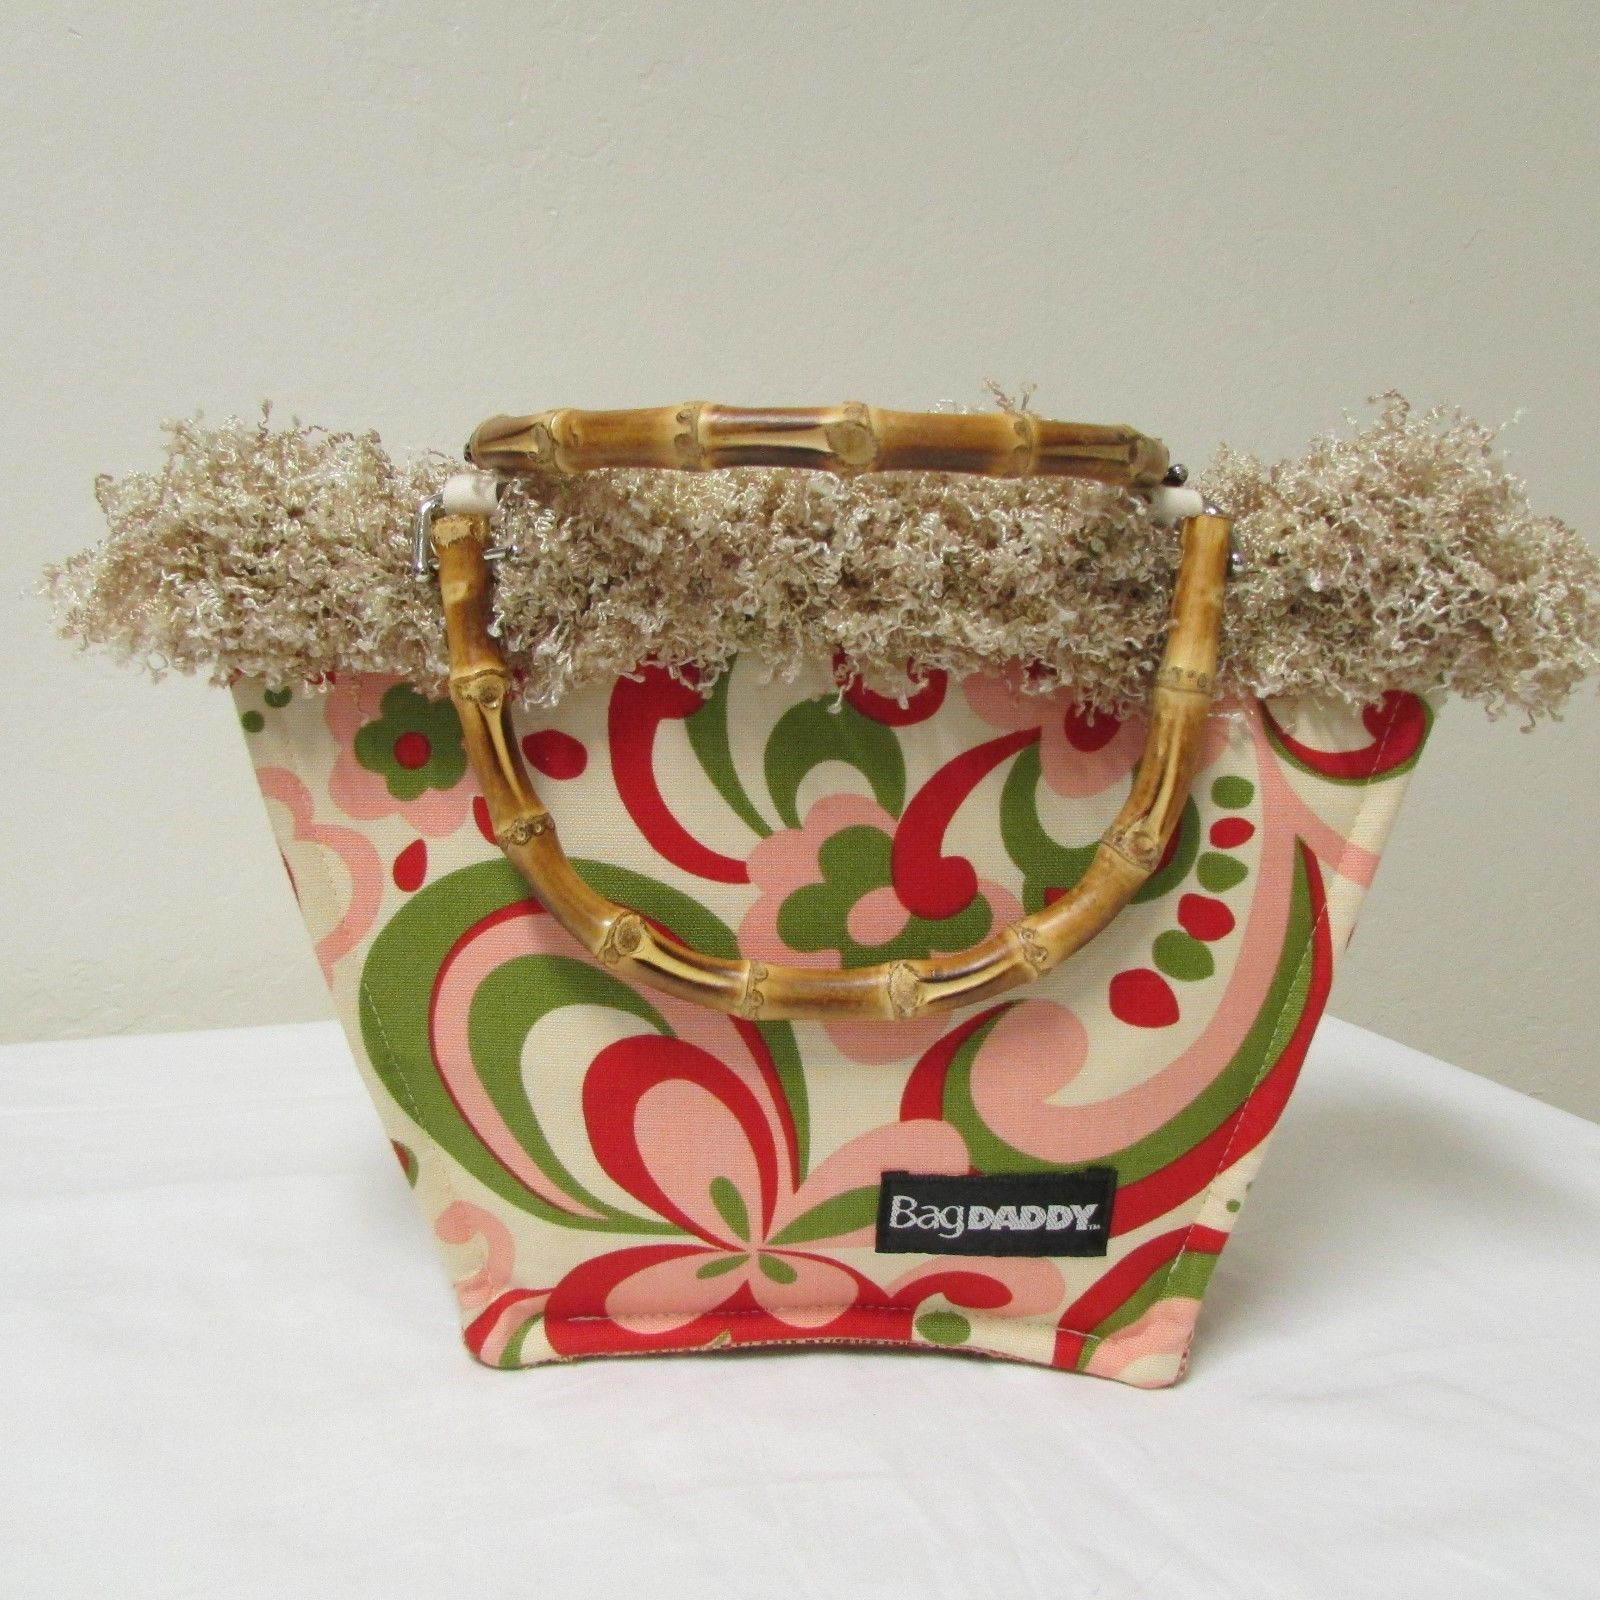 NWOT Bag Daddy Fun Funky Paisley Design Cream With Pink Red & Green Size Small image 2